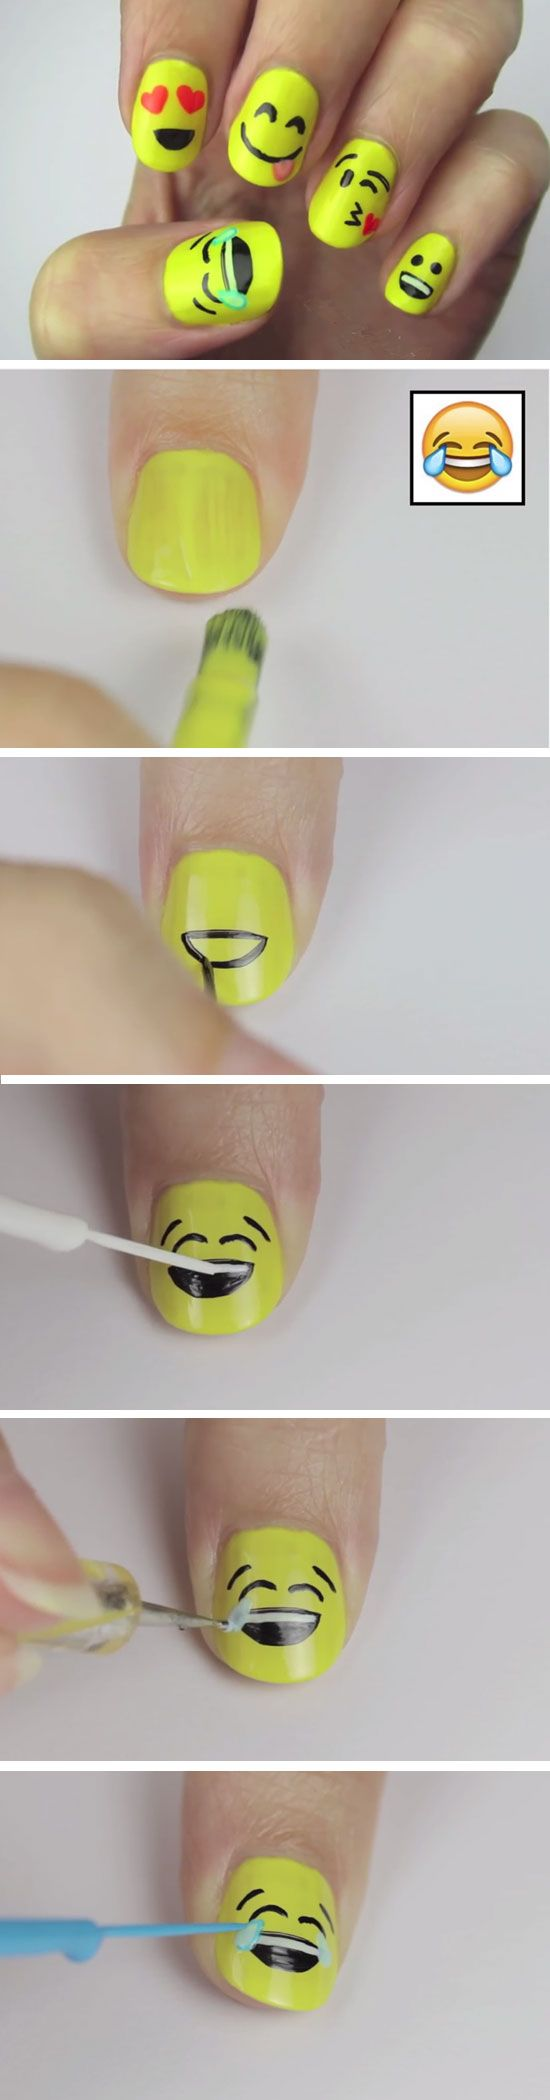 Emoji Nail Art | Awesome Nail Art Ideas. Try it if you want something different :) #nails